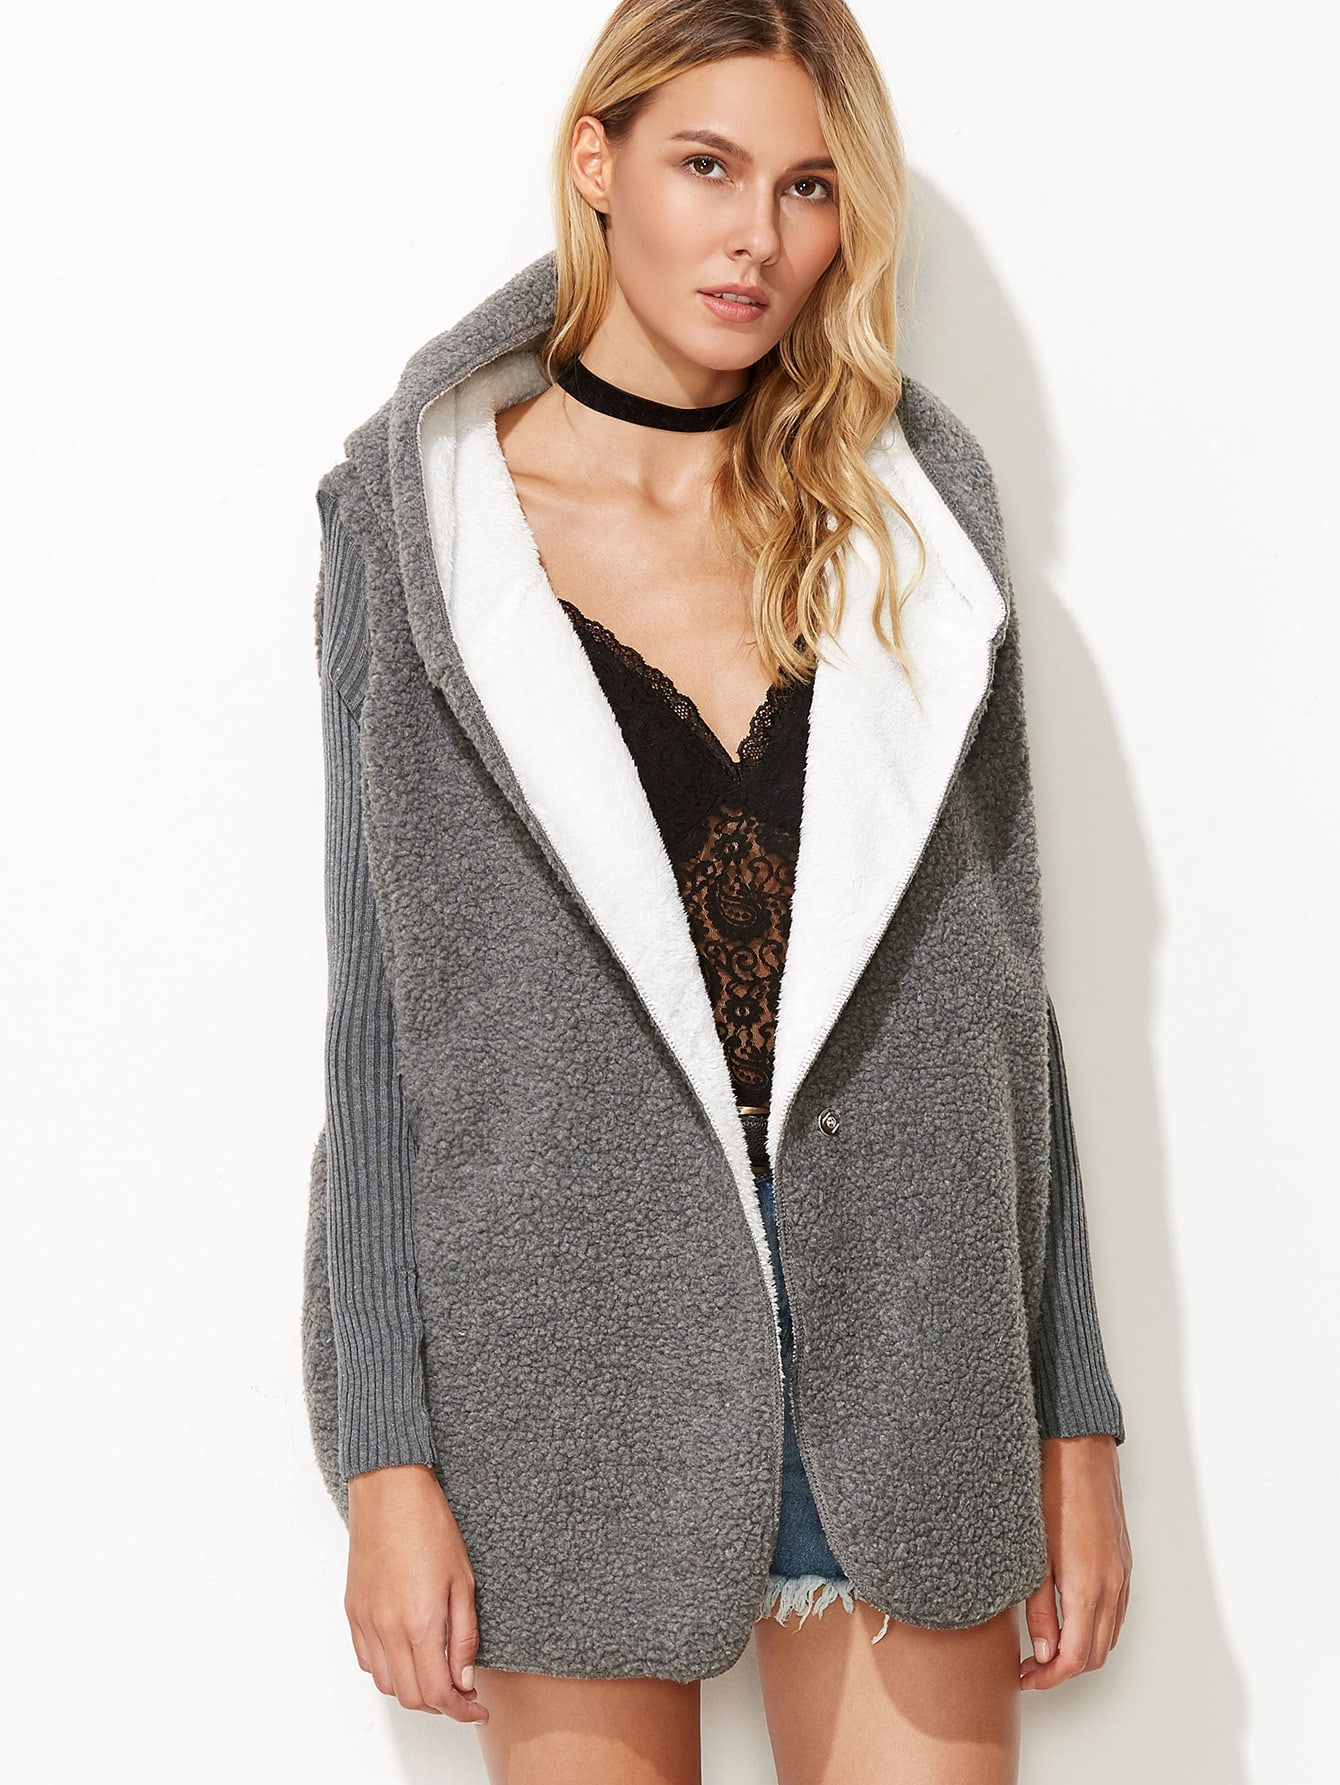 Contrast Ribbed Sleeve Sherpa CoatContrast Ribbed Sleeve Sherpa Coat<br><br>color: Grey<br>size: one-size